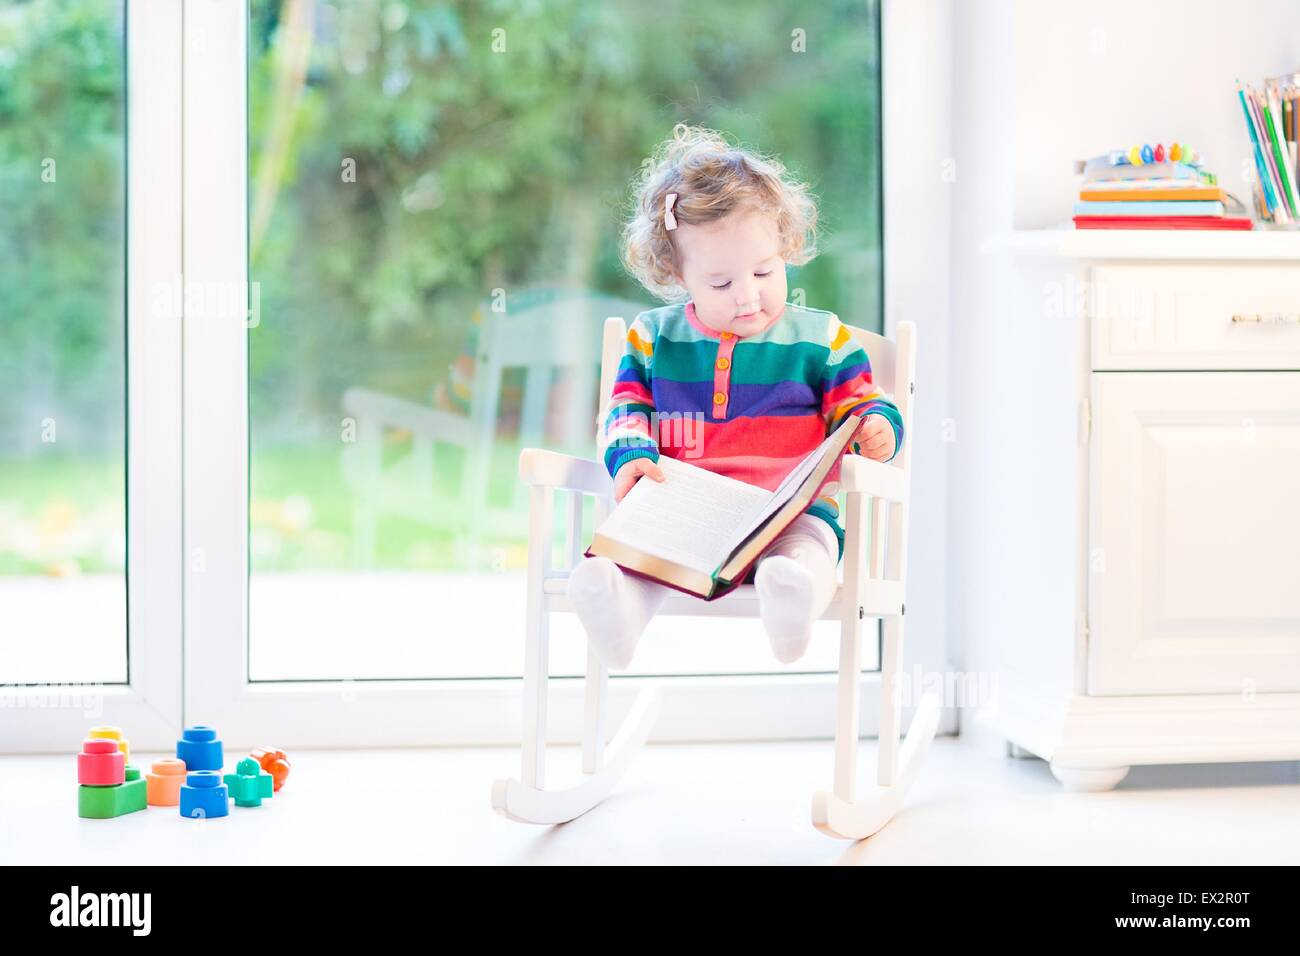 Cute Little Toddler Girl Reading A Book In A White Rocking Chair Next To A  Big Window With Garden View